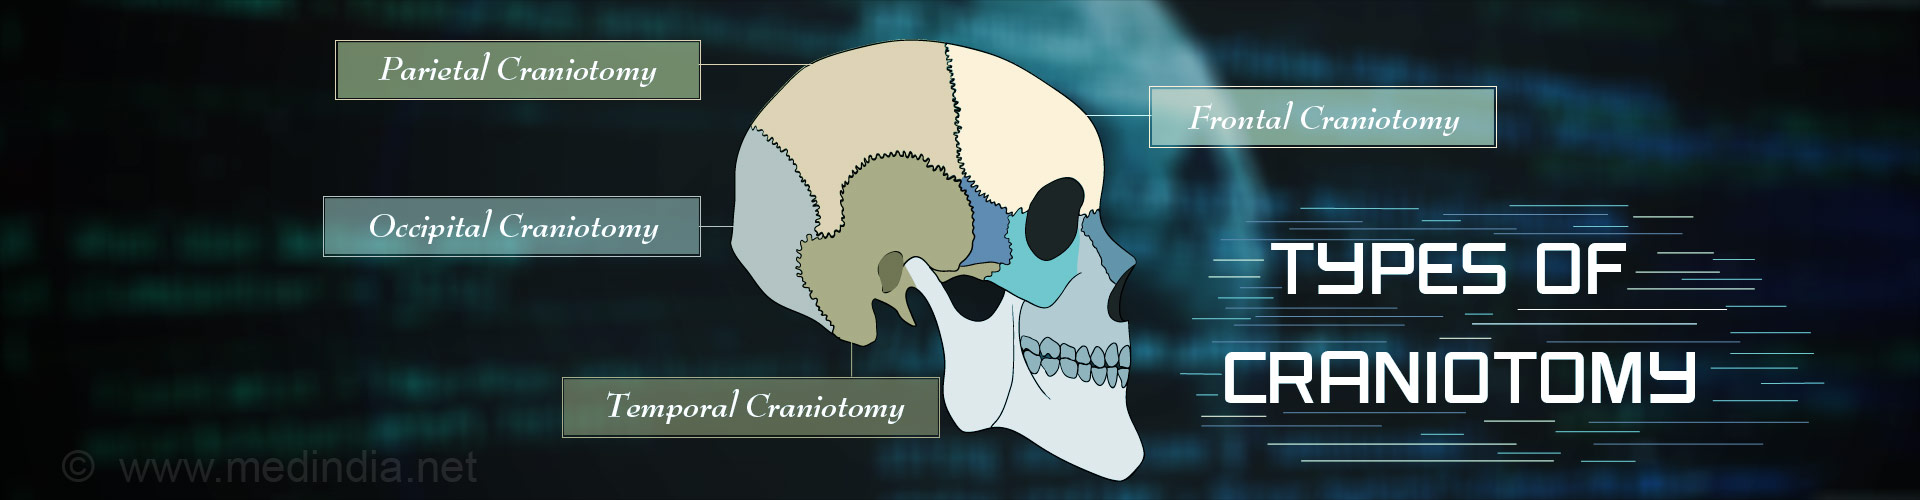 Craniotomy –Types, Indications, Procedure, Complications